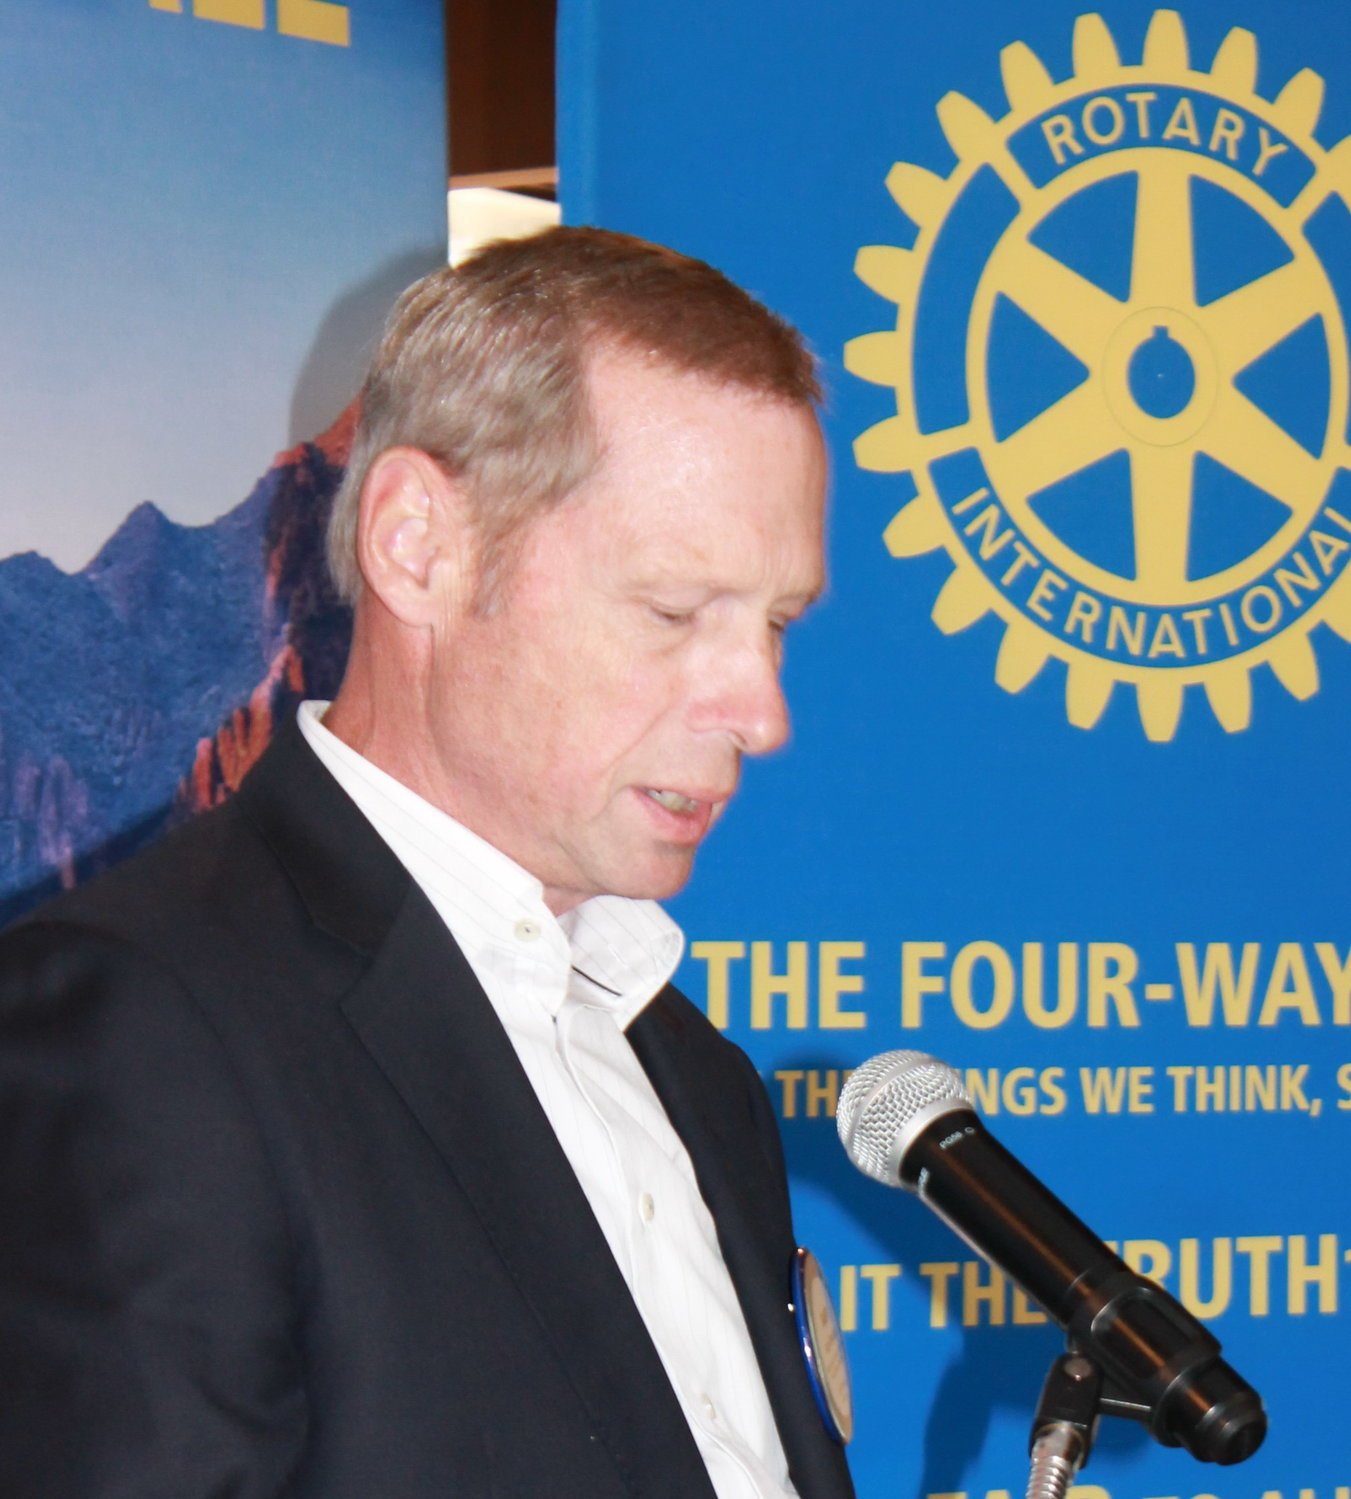 Rotary Club of Scottsdale's Scholarship Committee Chair Gary Chontos announces scholarship interview dates at a club meeting held earlier this year.